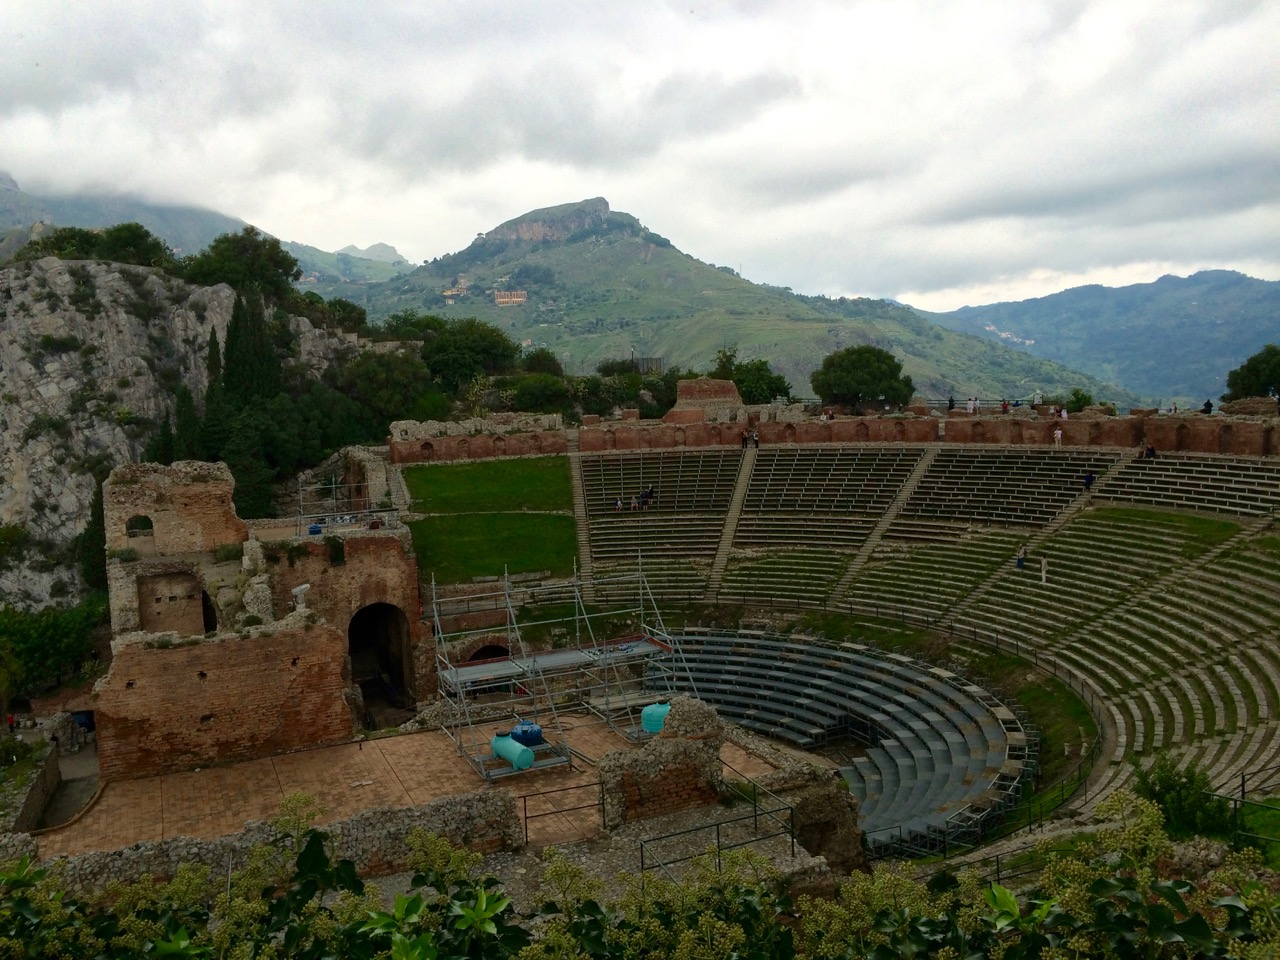 The ancient Theater of Taormina